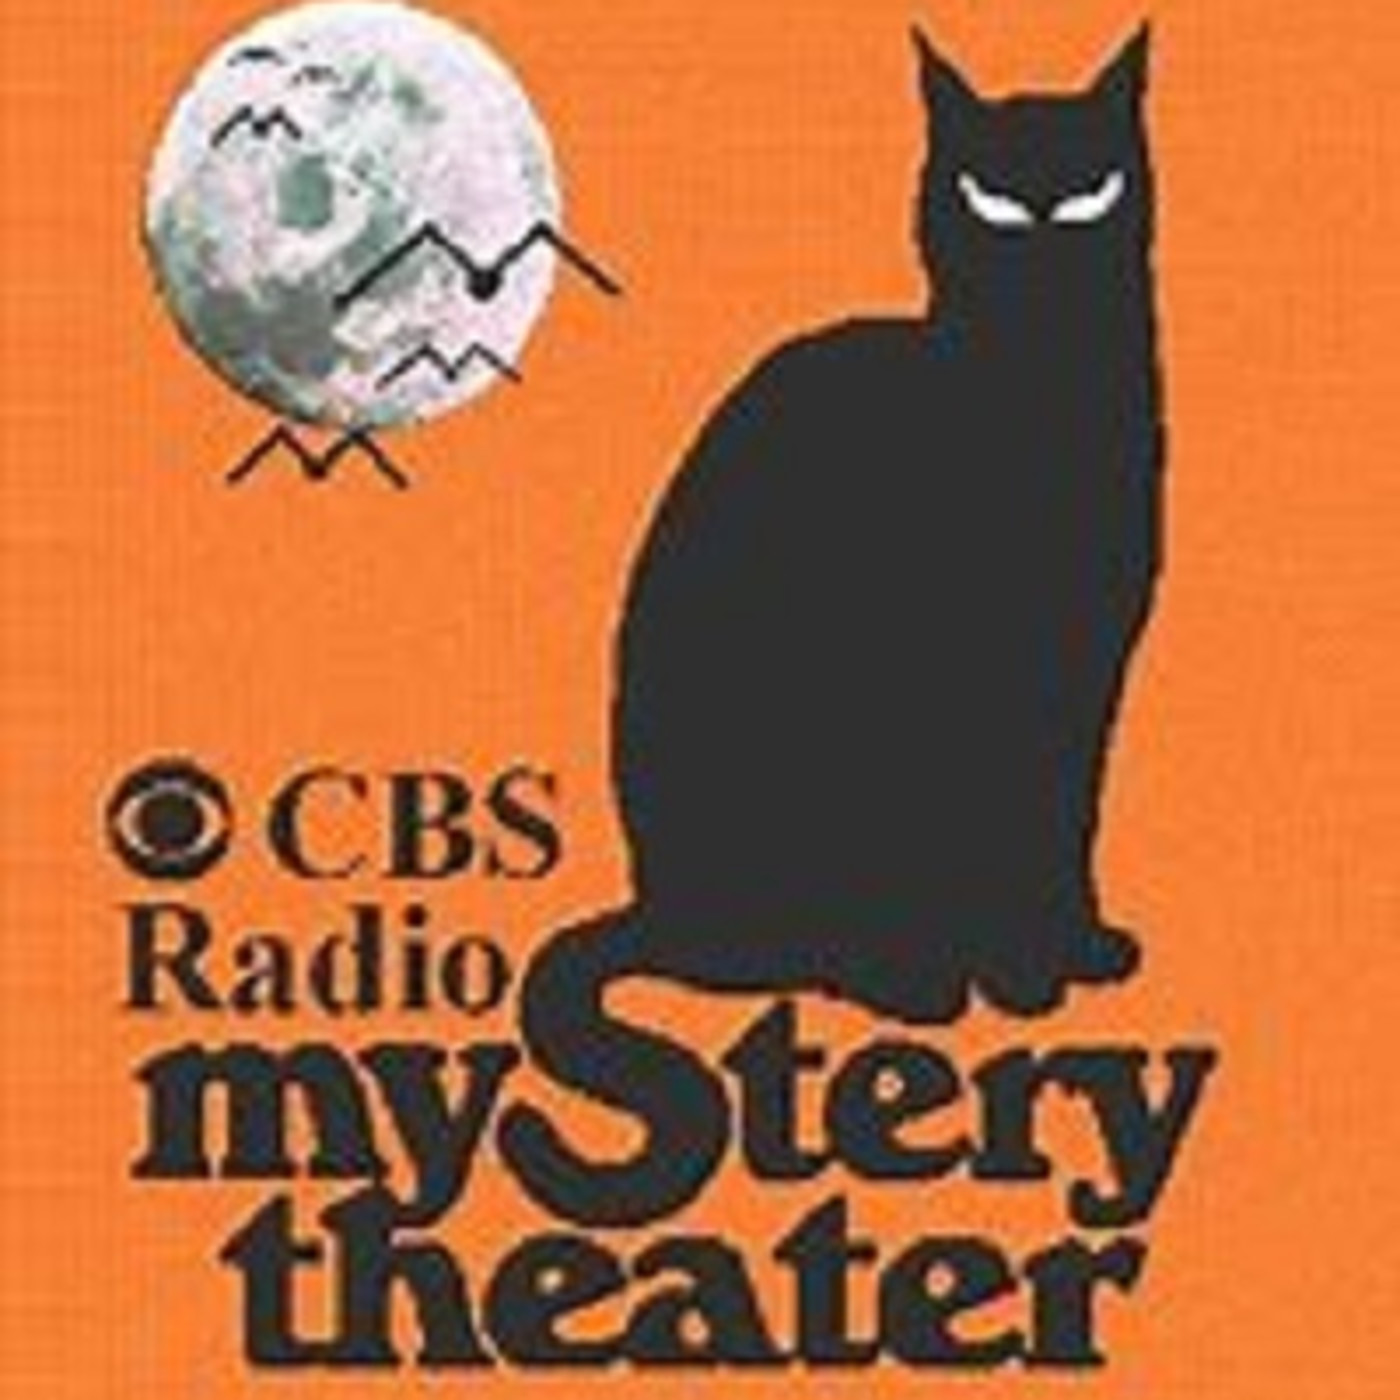 CBS Radio Mystery Theater_79-09-19_(1014)_Youre Better Off Guilty